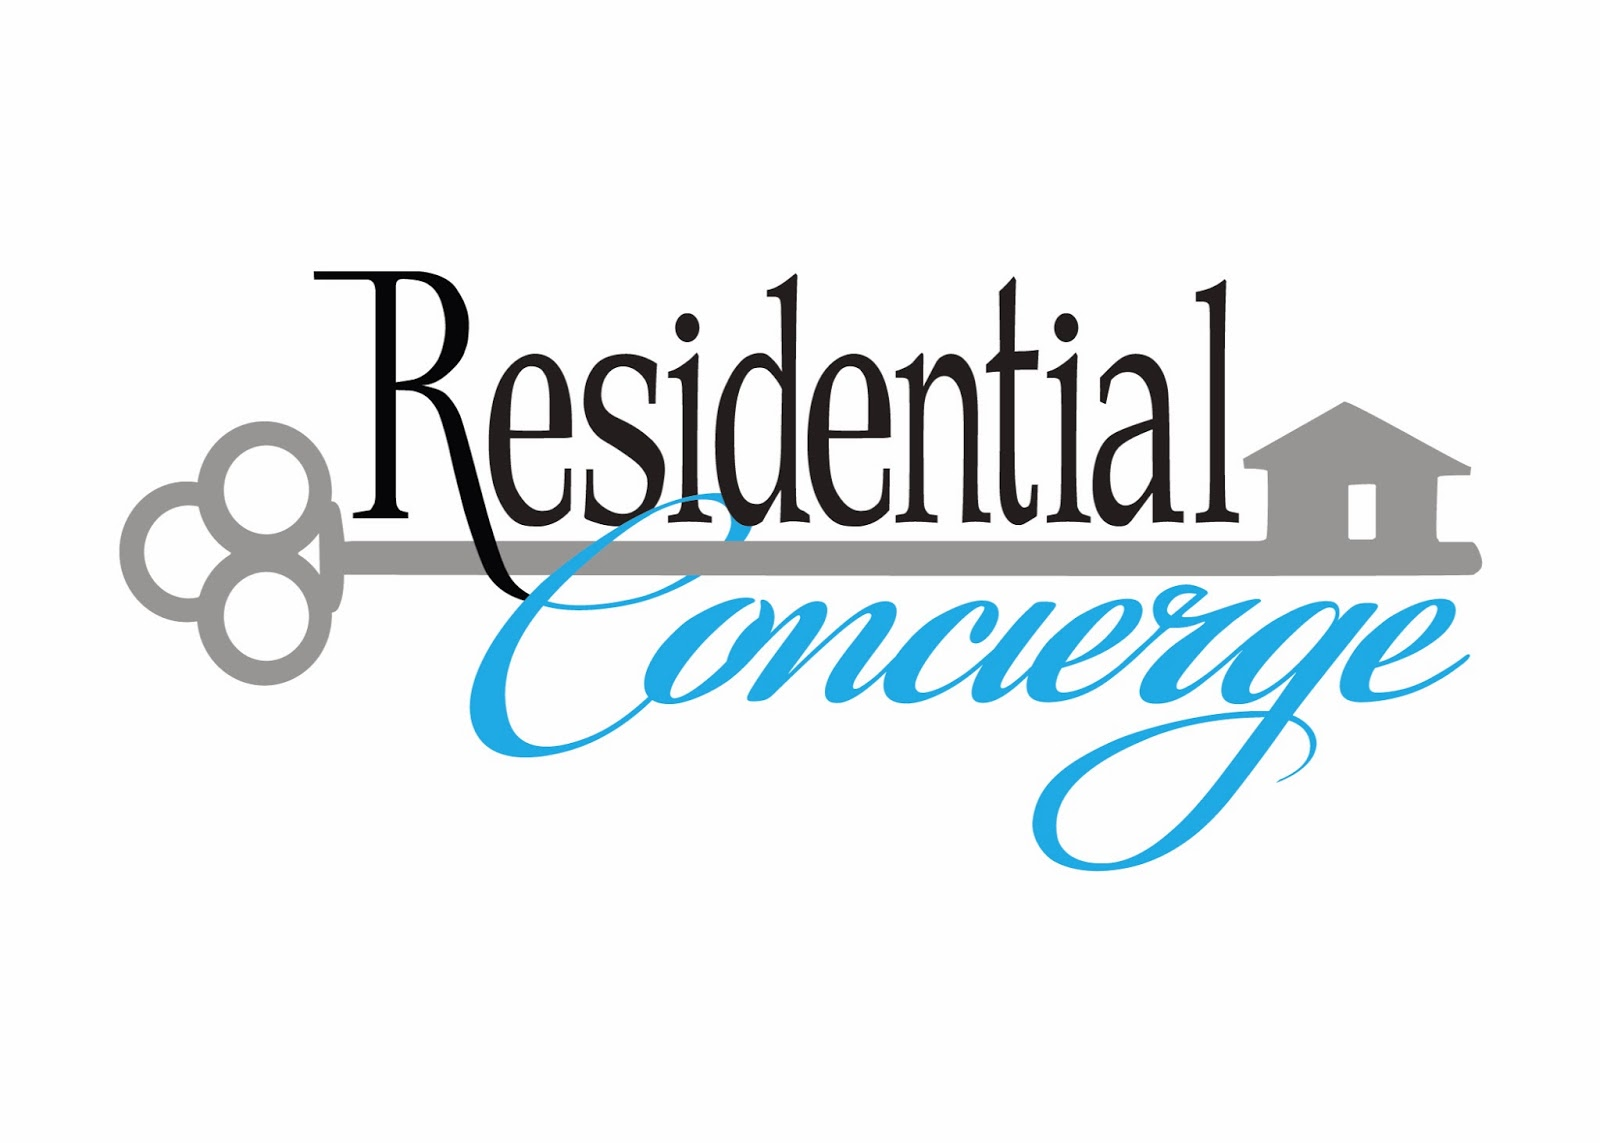 commercial concierge services residential concierge commercial concierge services residential concierge multifamily concierge services